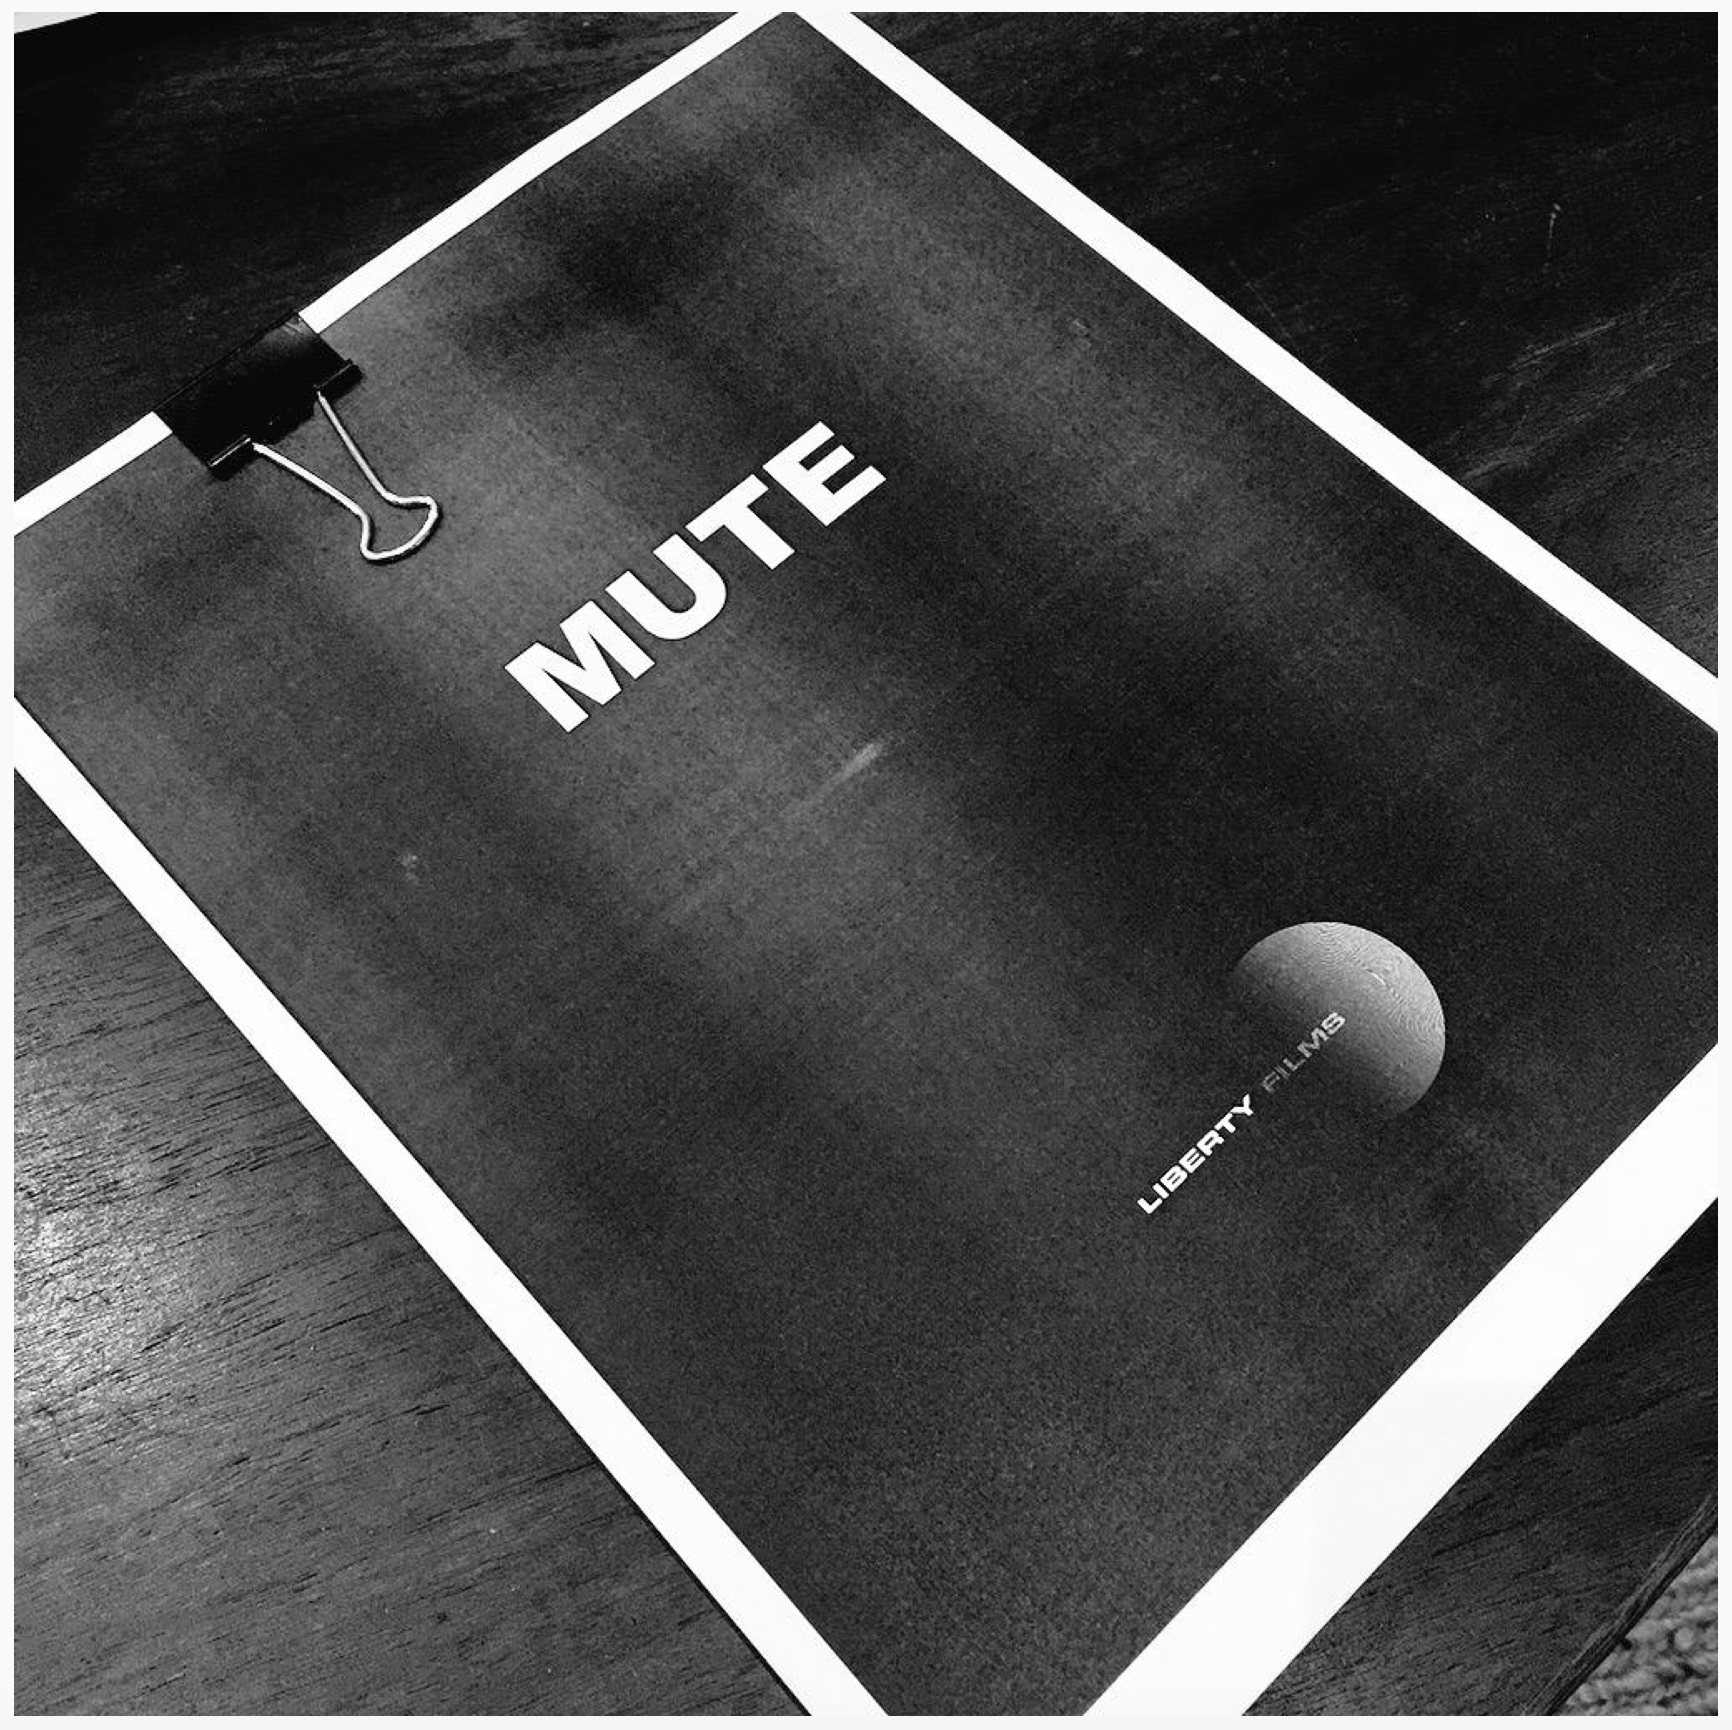 MUTE Script Pic Tweeted By Duncan Jones